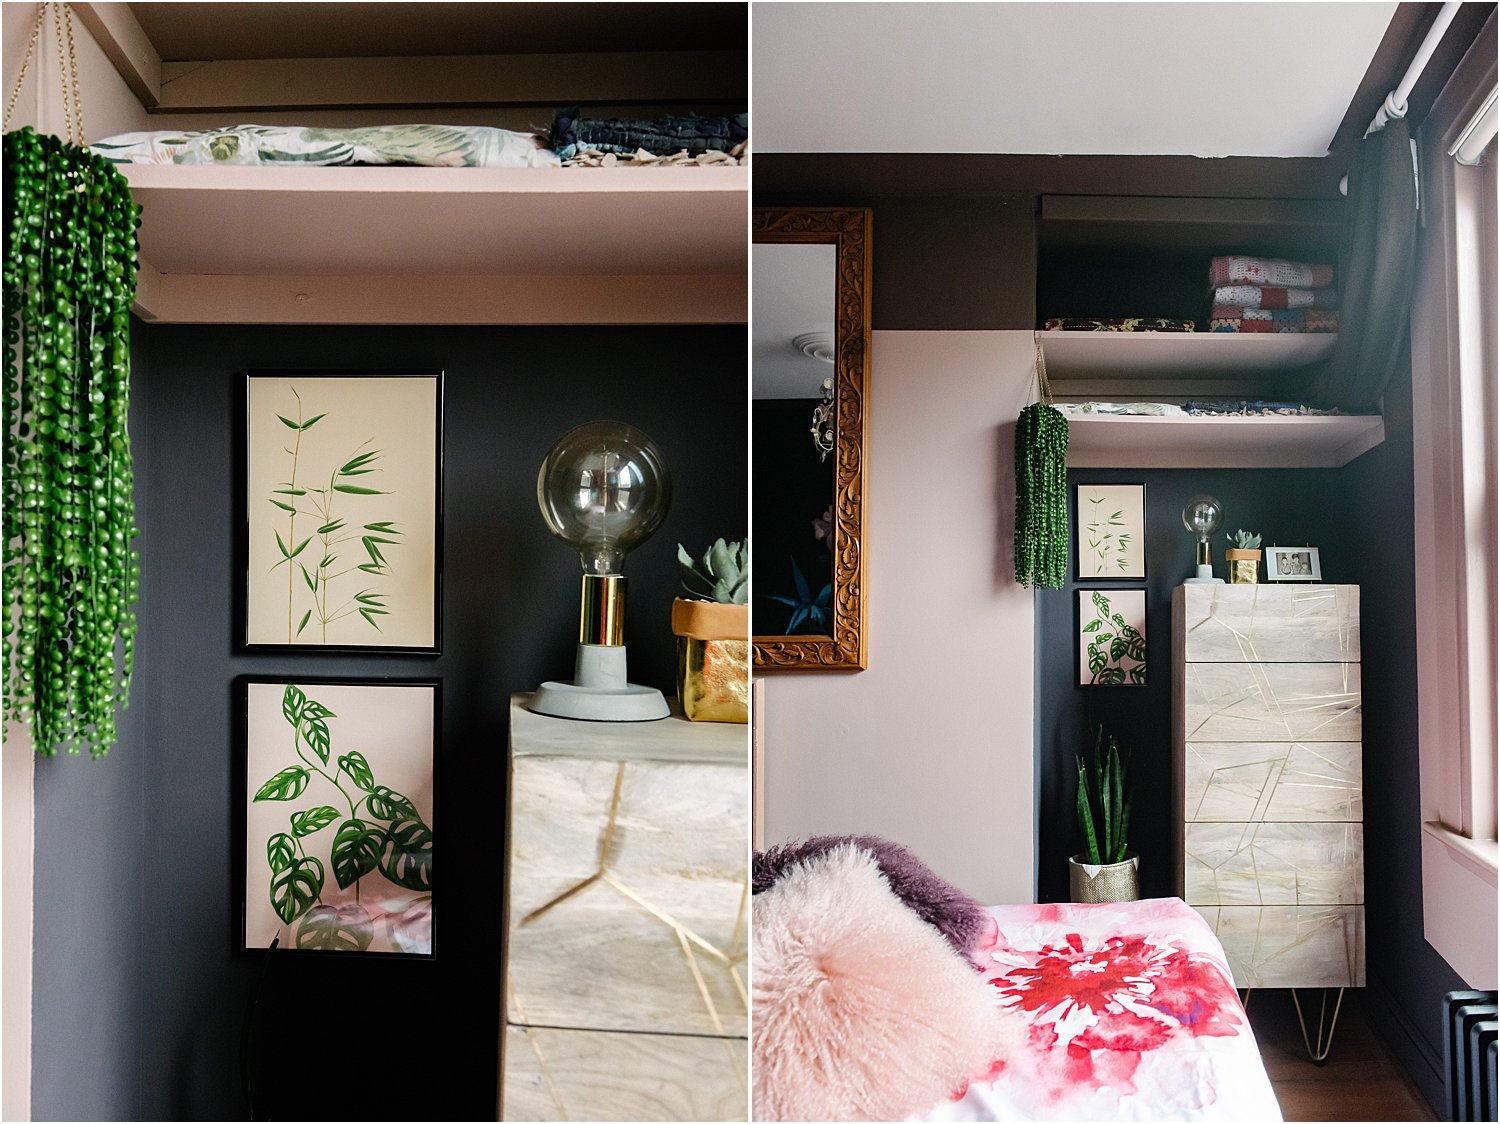 dps-how-to-style-interiors-for-photoshoots-lily-sawyer-interior-design